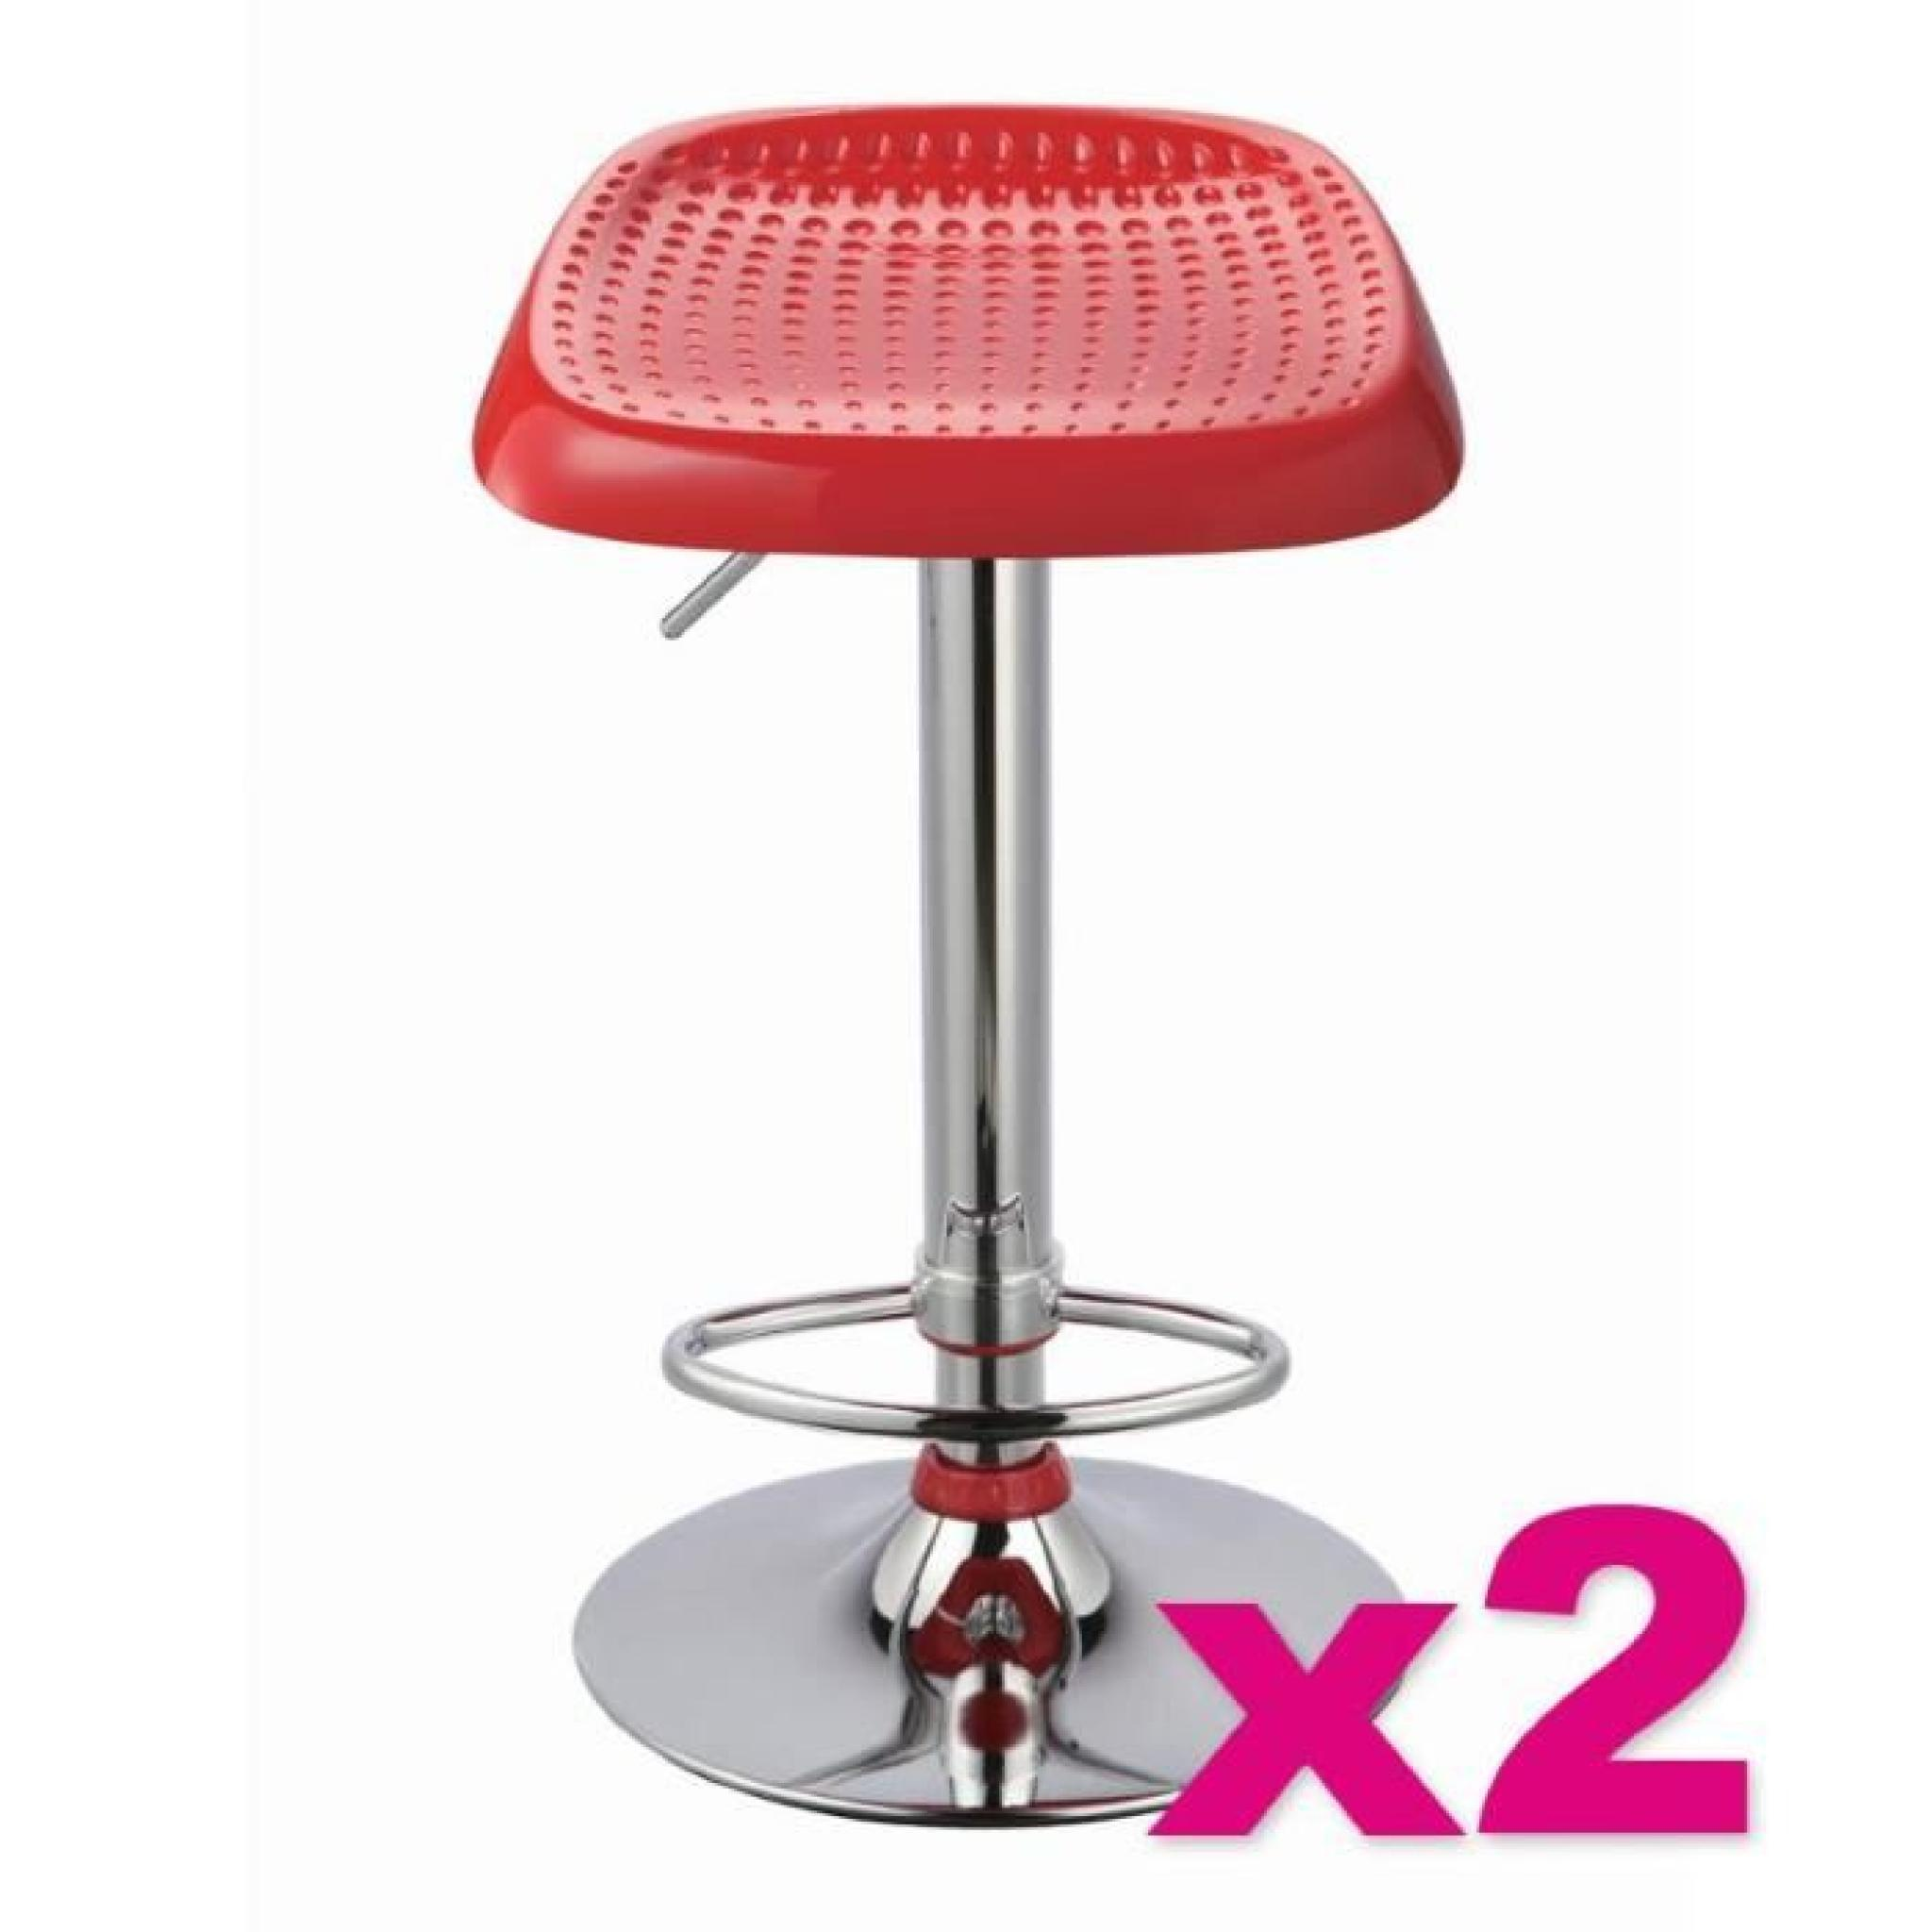 Lot de 2 tabourets de bar manhattan rouge achat vente tabouret de bar pas c - Lot tabouret de bar pas cher ...